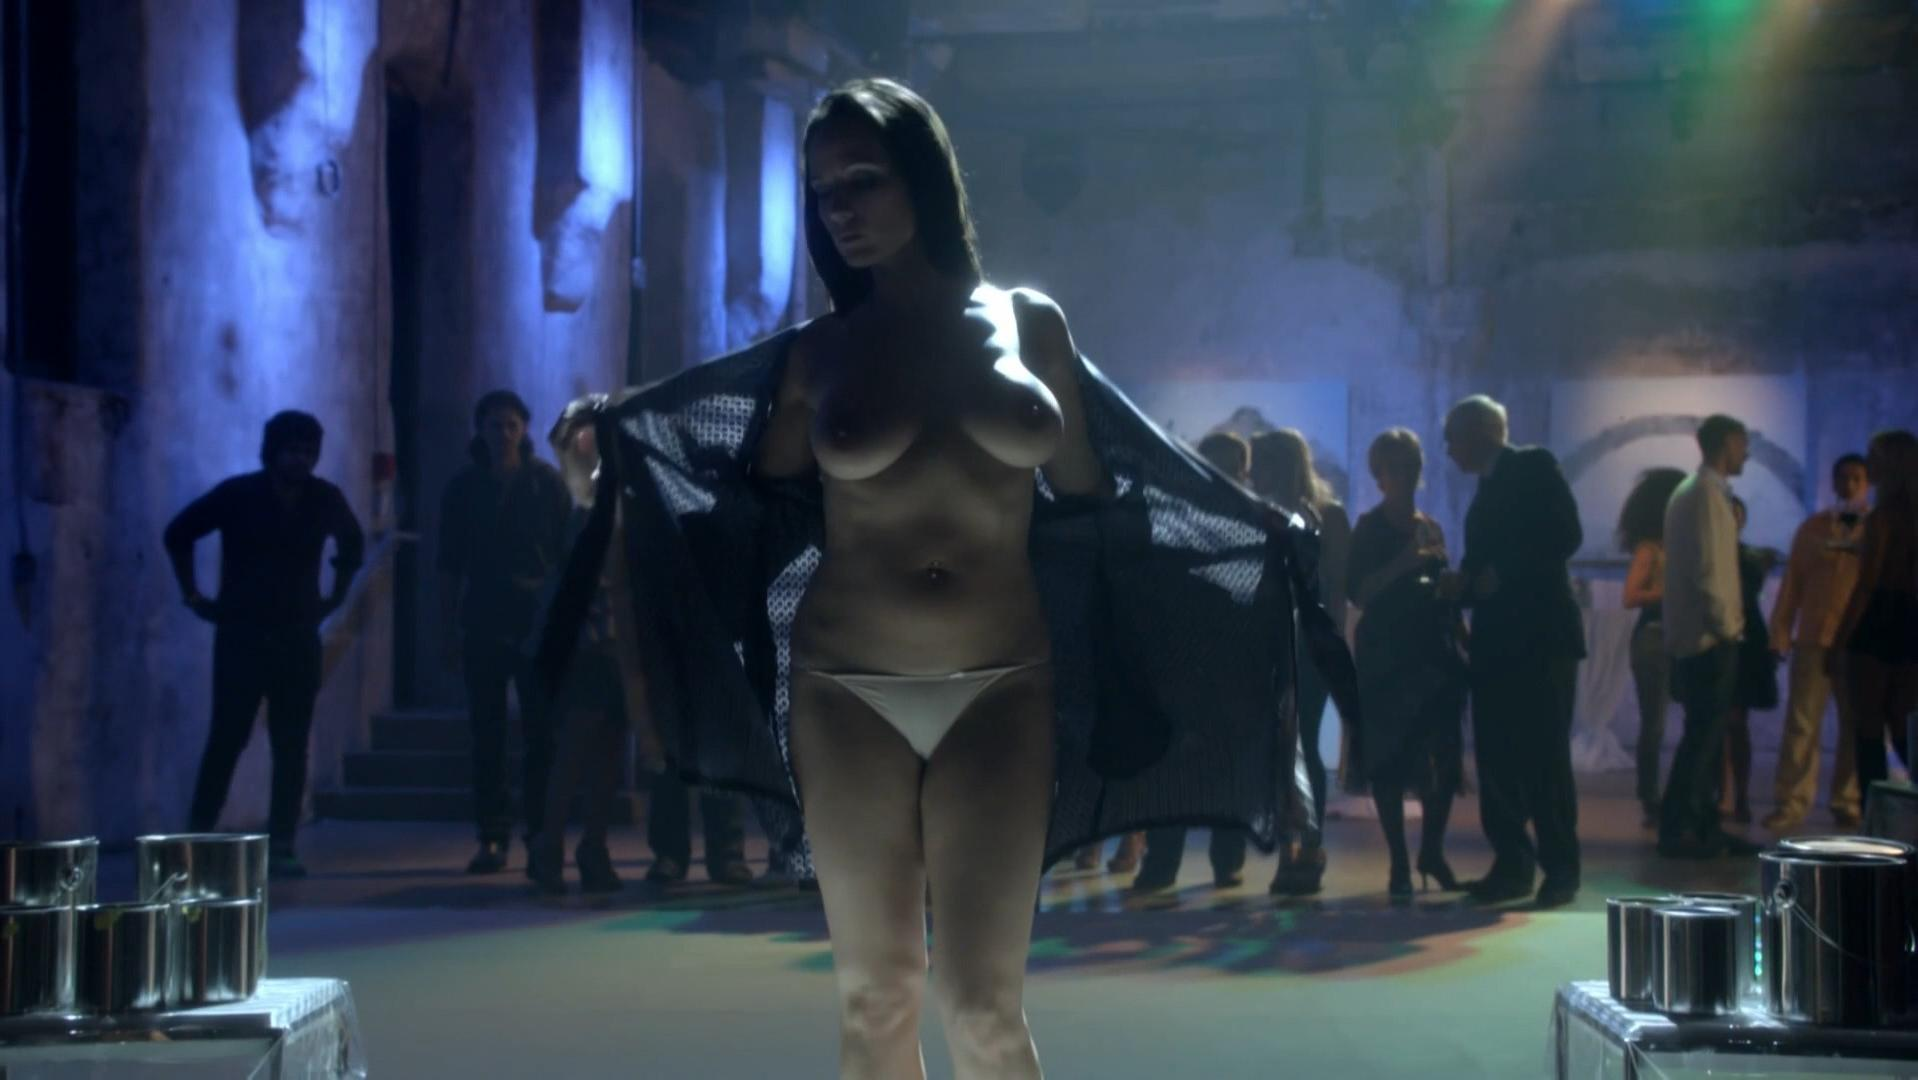 Moon Dailly nude, Samantha Farrow nude - Transporter The Series s01e01 (2012)